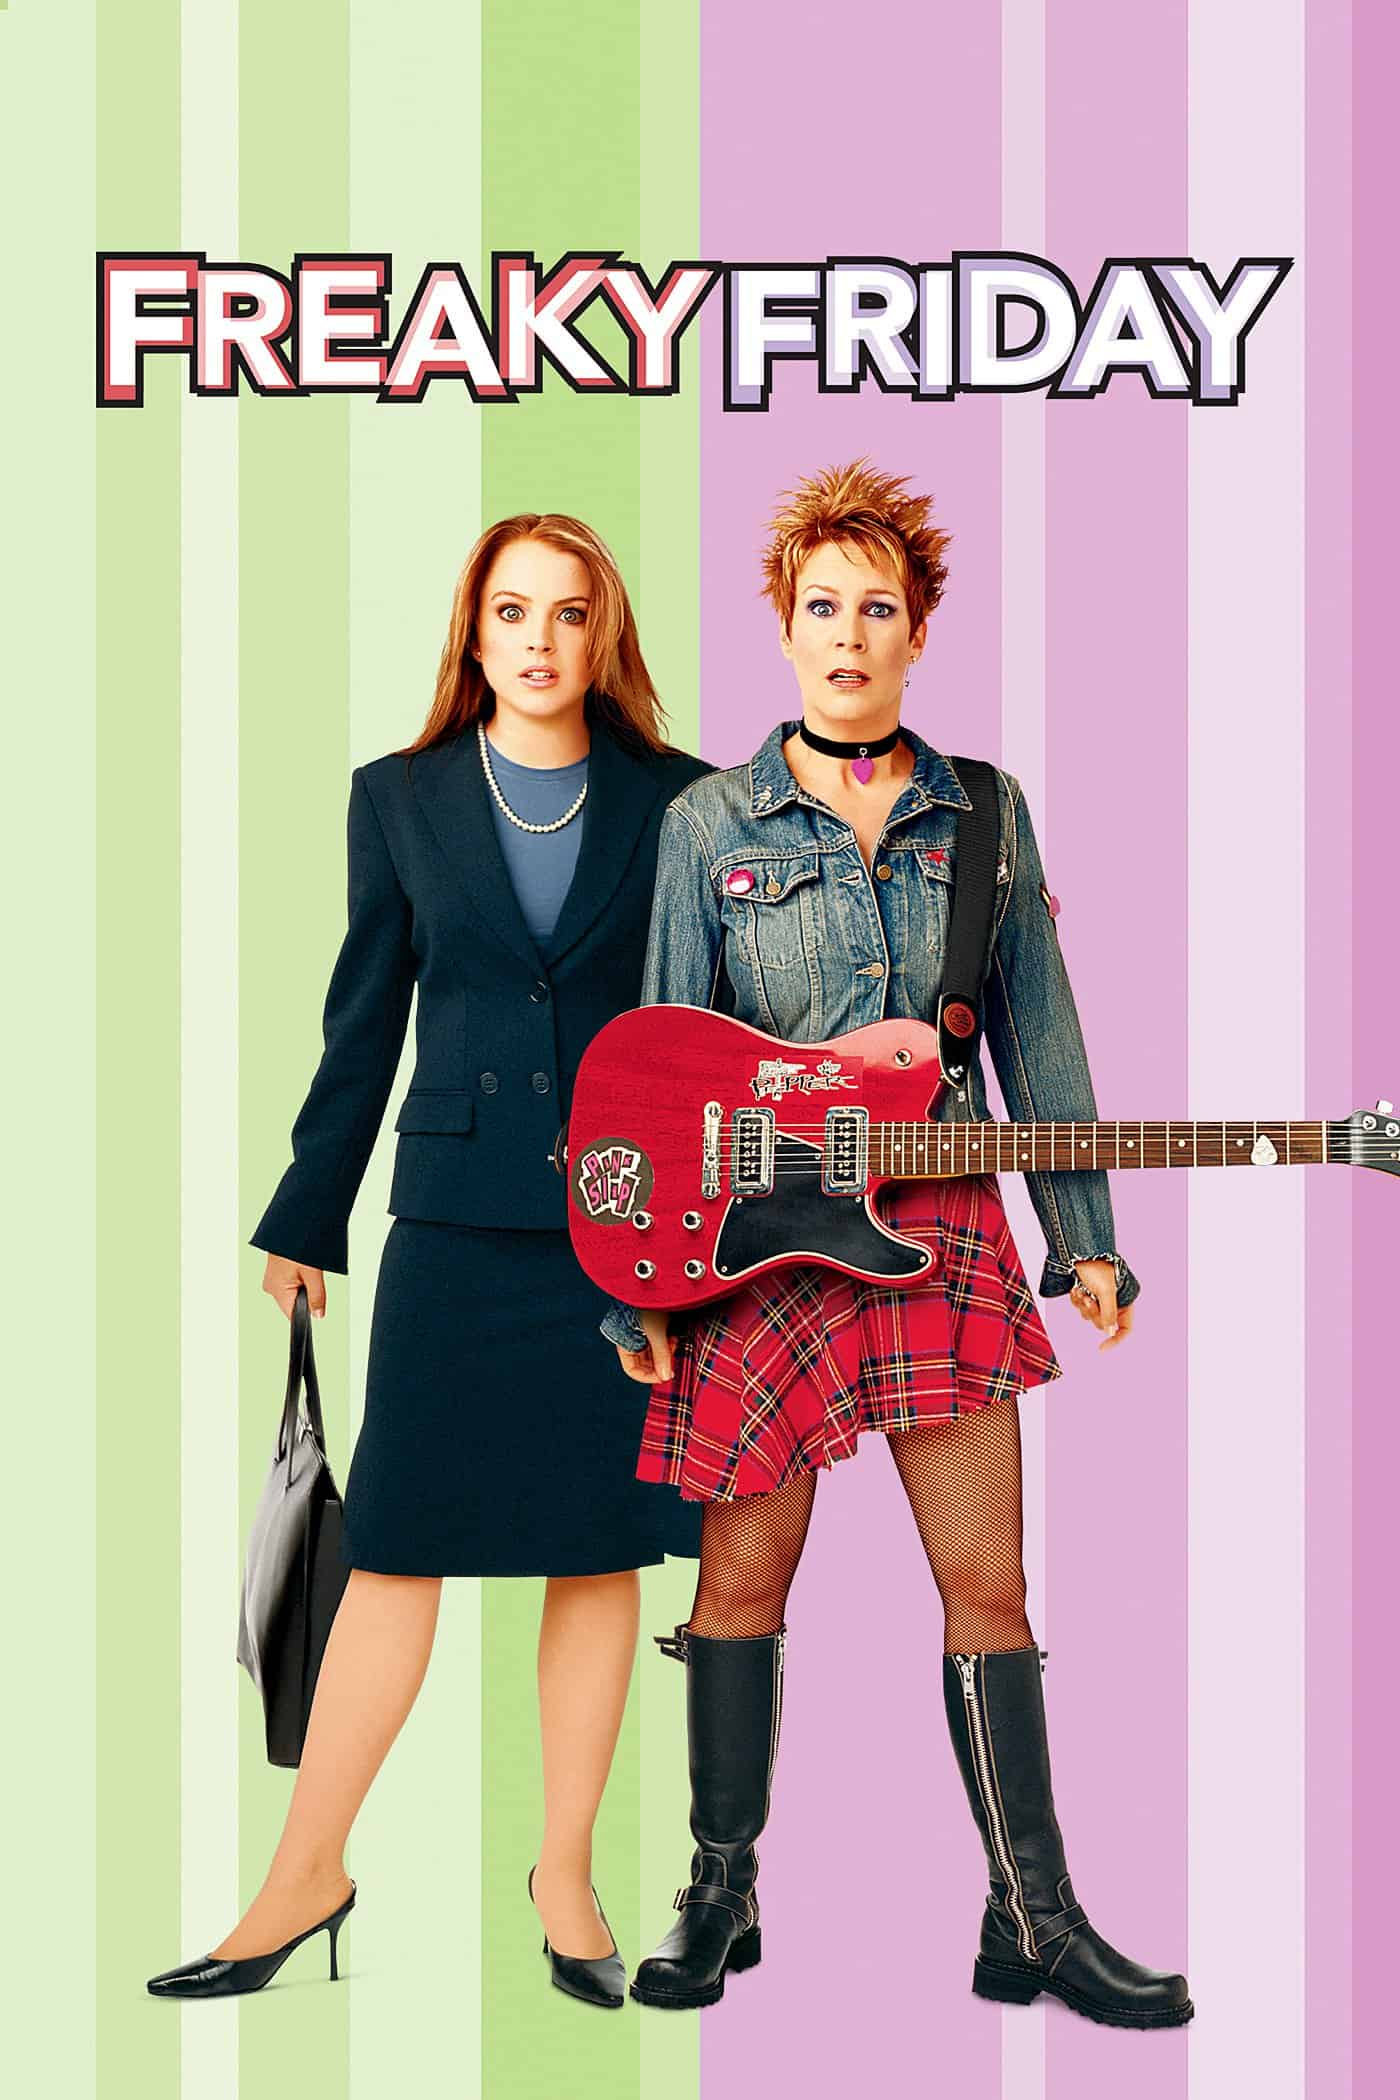 Freaky Friday, 2003